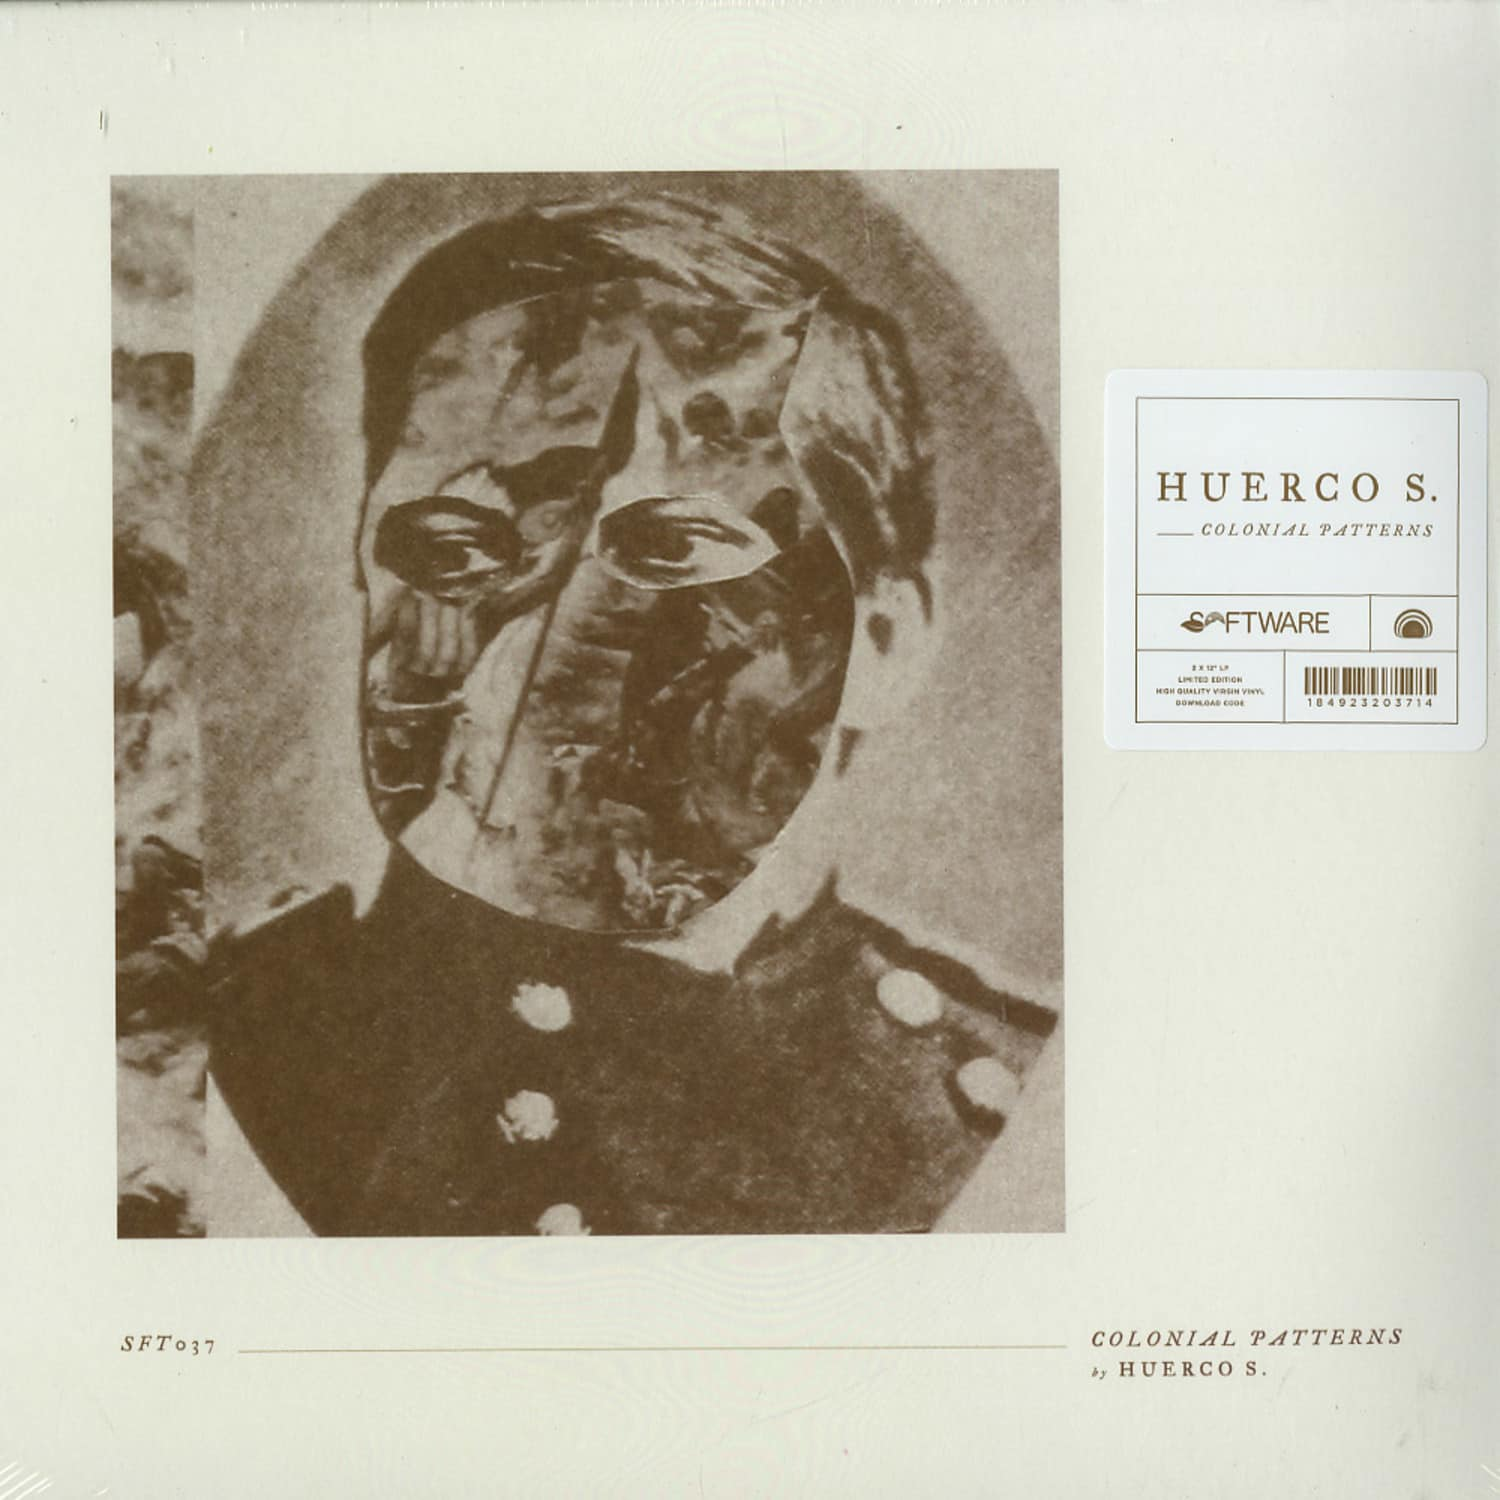 Huerco S - COLONIAL PATTERNS